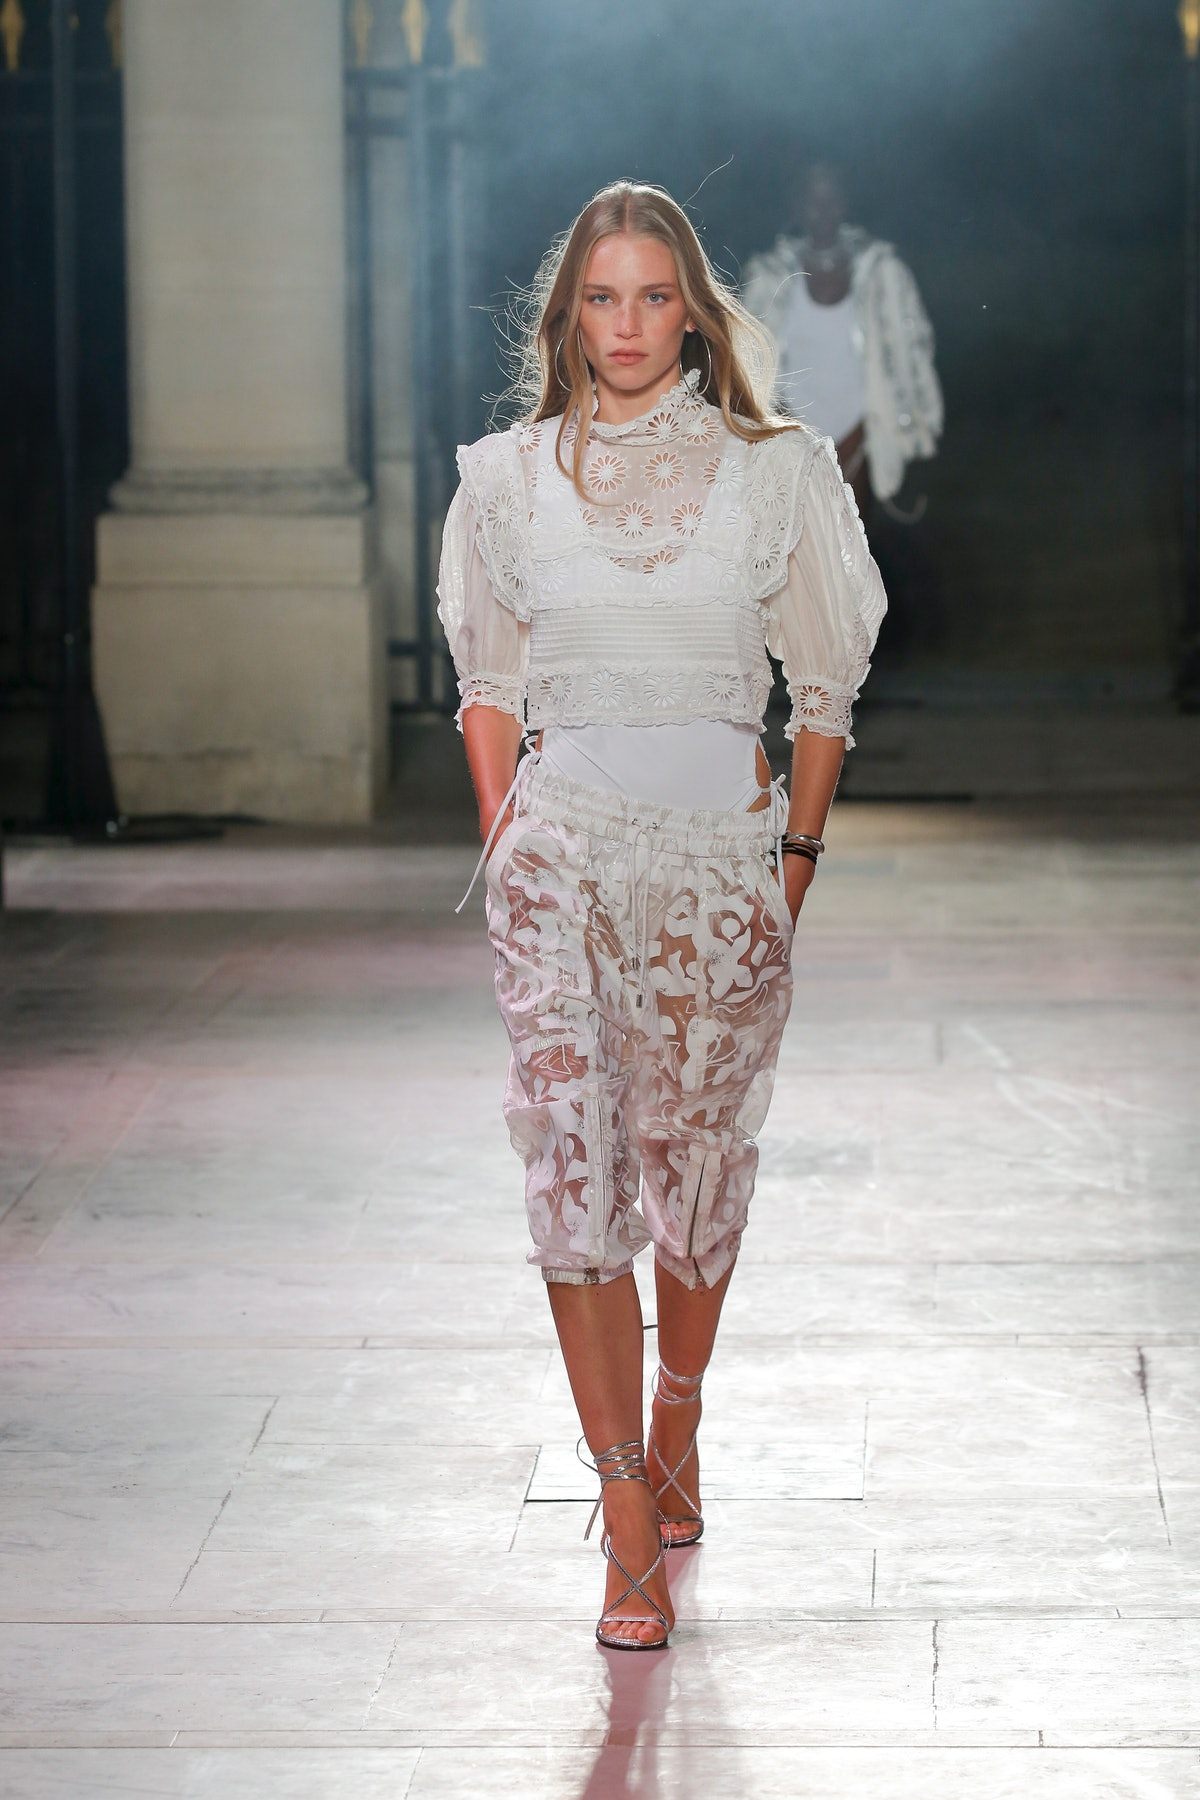 A model walks the runway during the Isabel Marant Ready to Wear Spring/Summer 2022 fashion show as p...